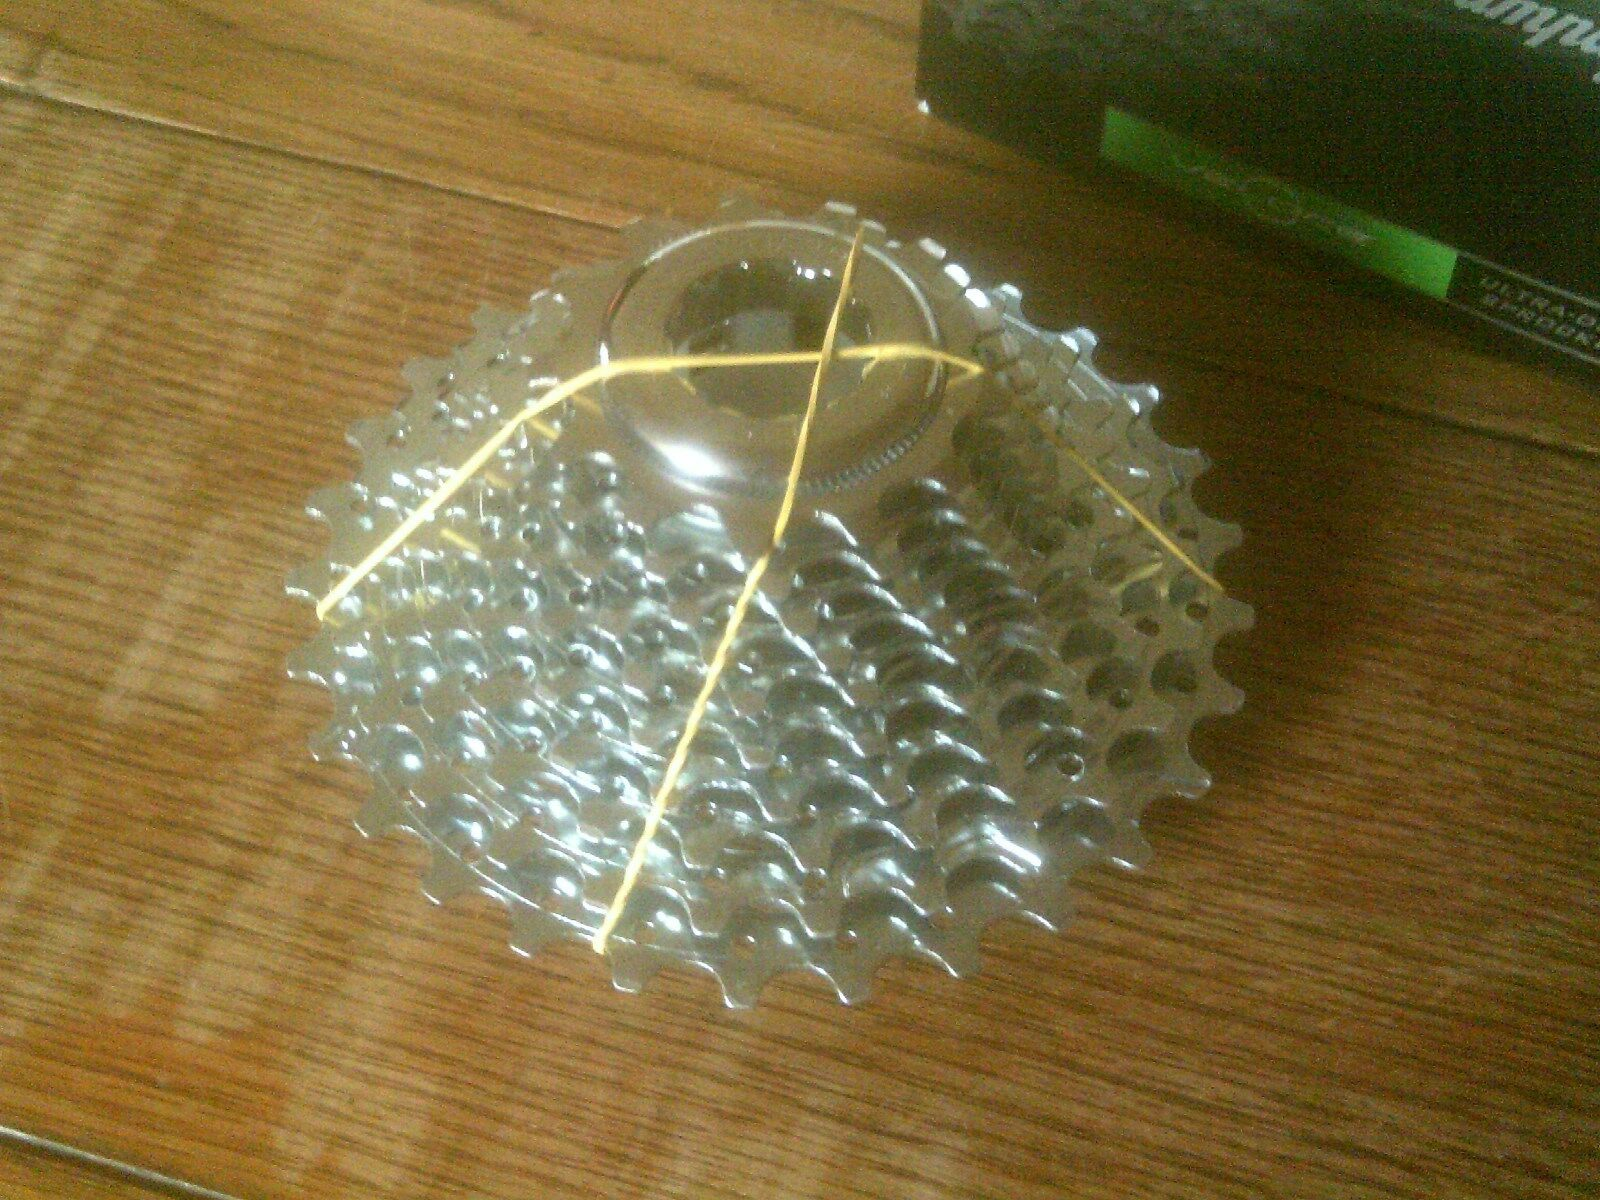 CAMPAGNOLO VELOCE UD 10 SPEED 13-29 TOOTH CASSETTE